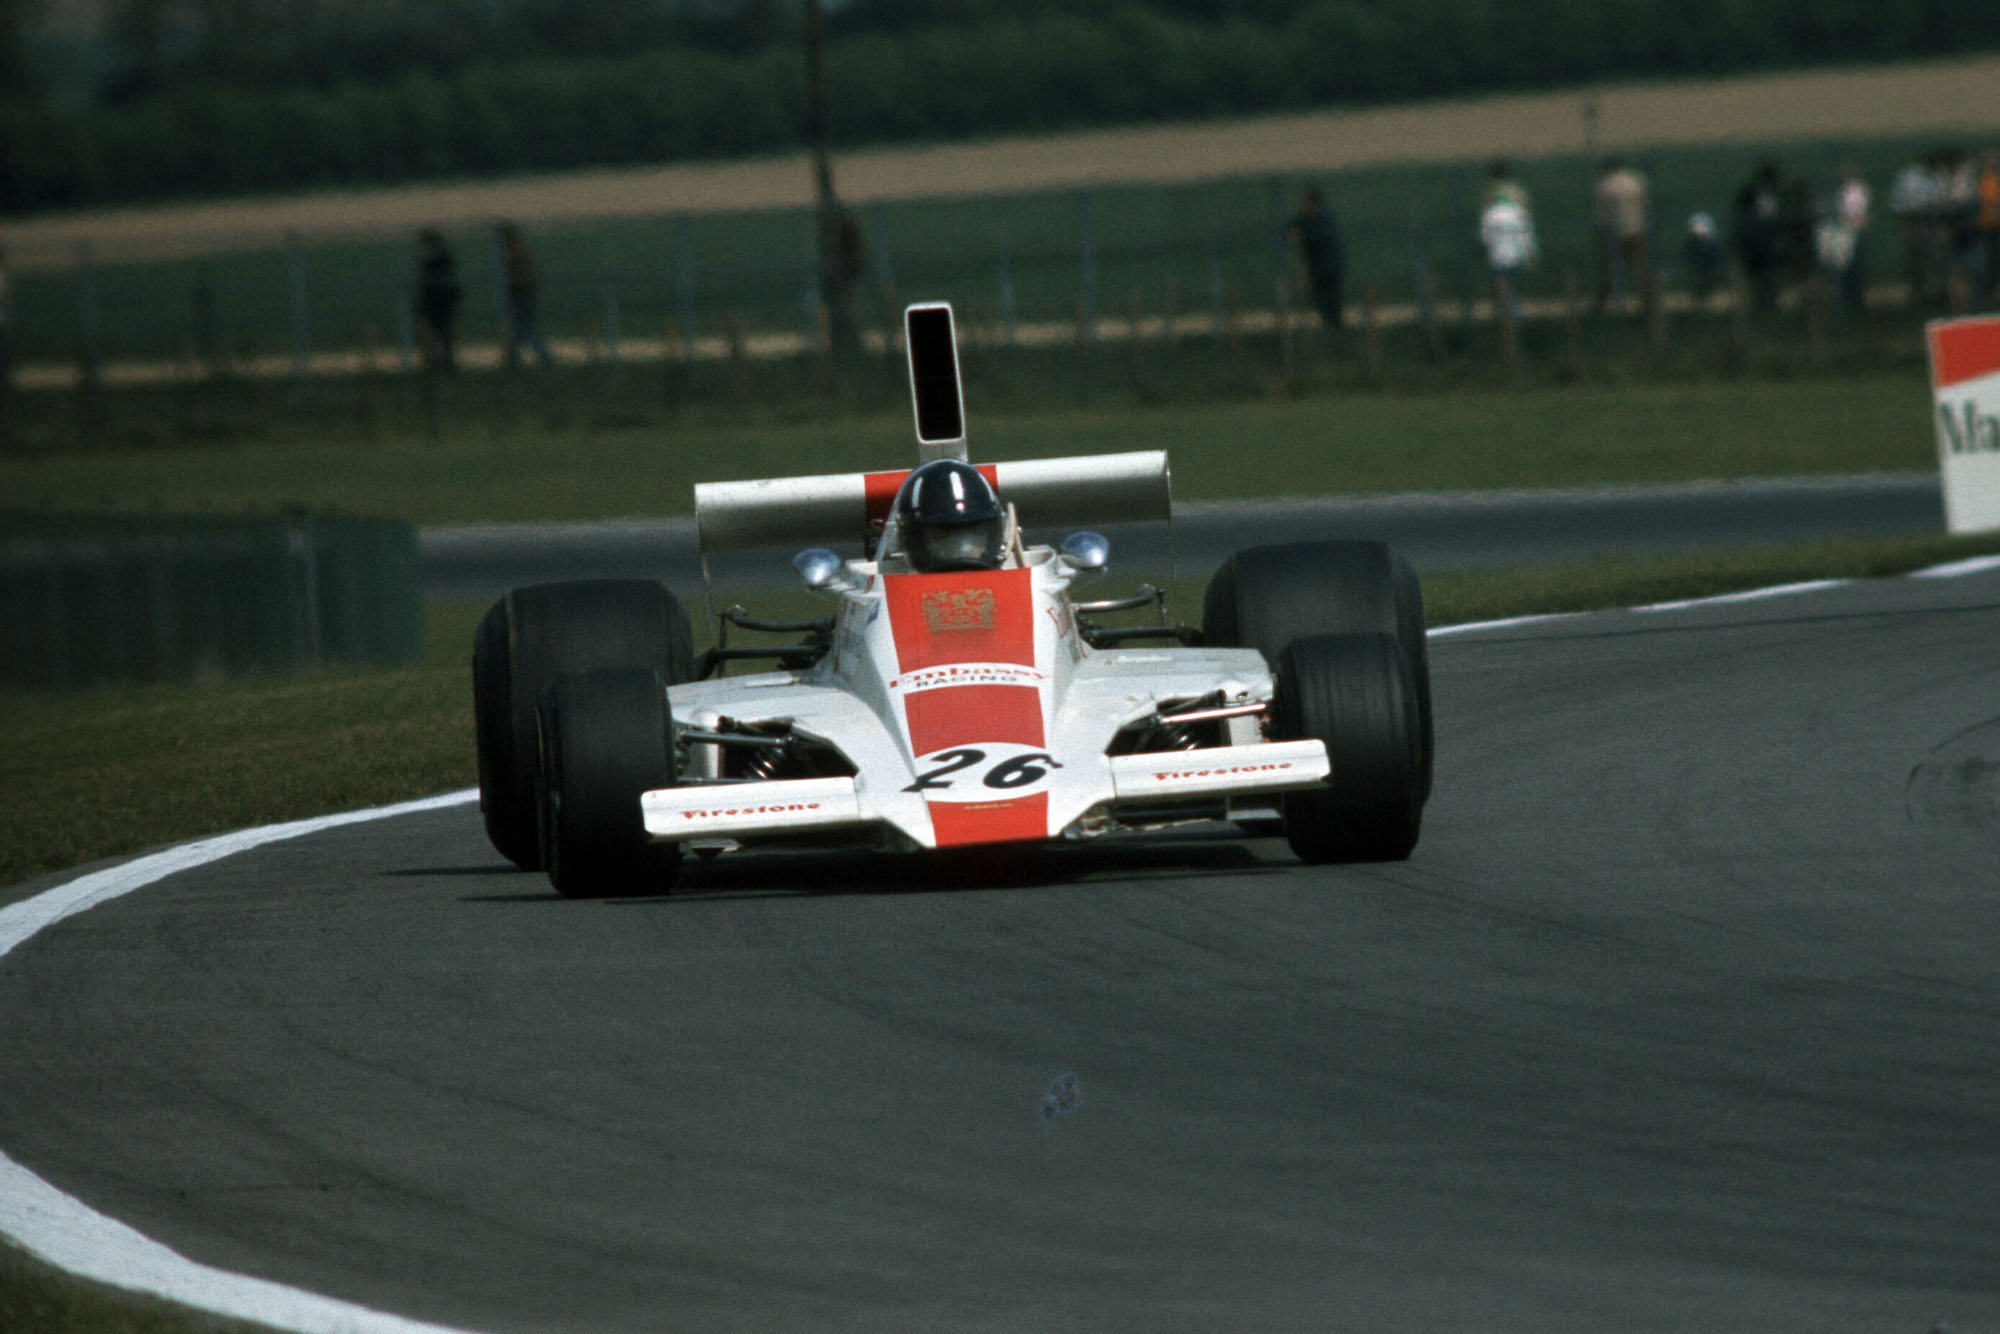 Graham Hill driving for his own Embassy Hill Racing team at the 1974 Belgian Grand Prix